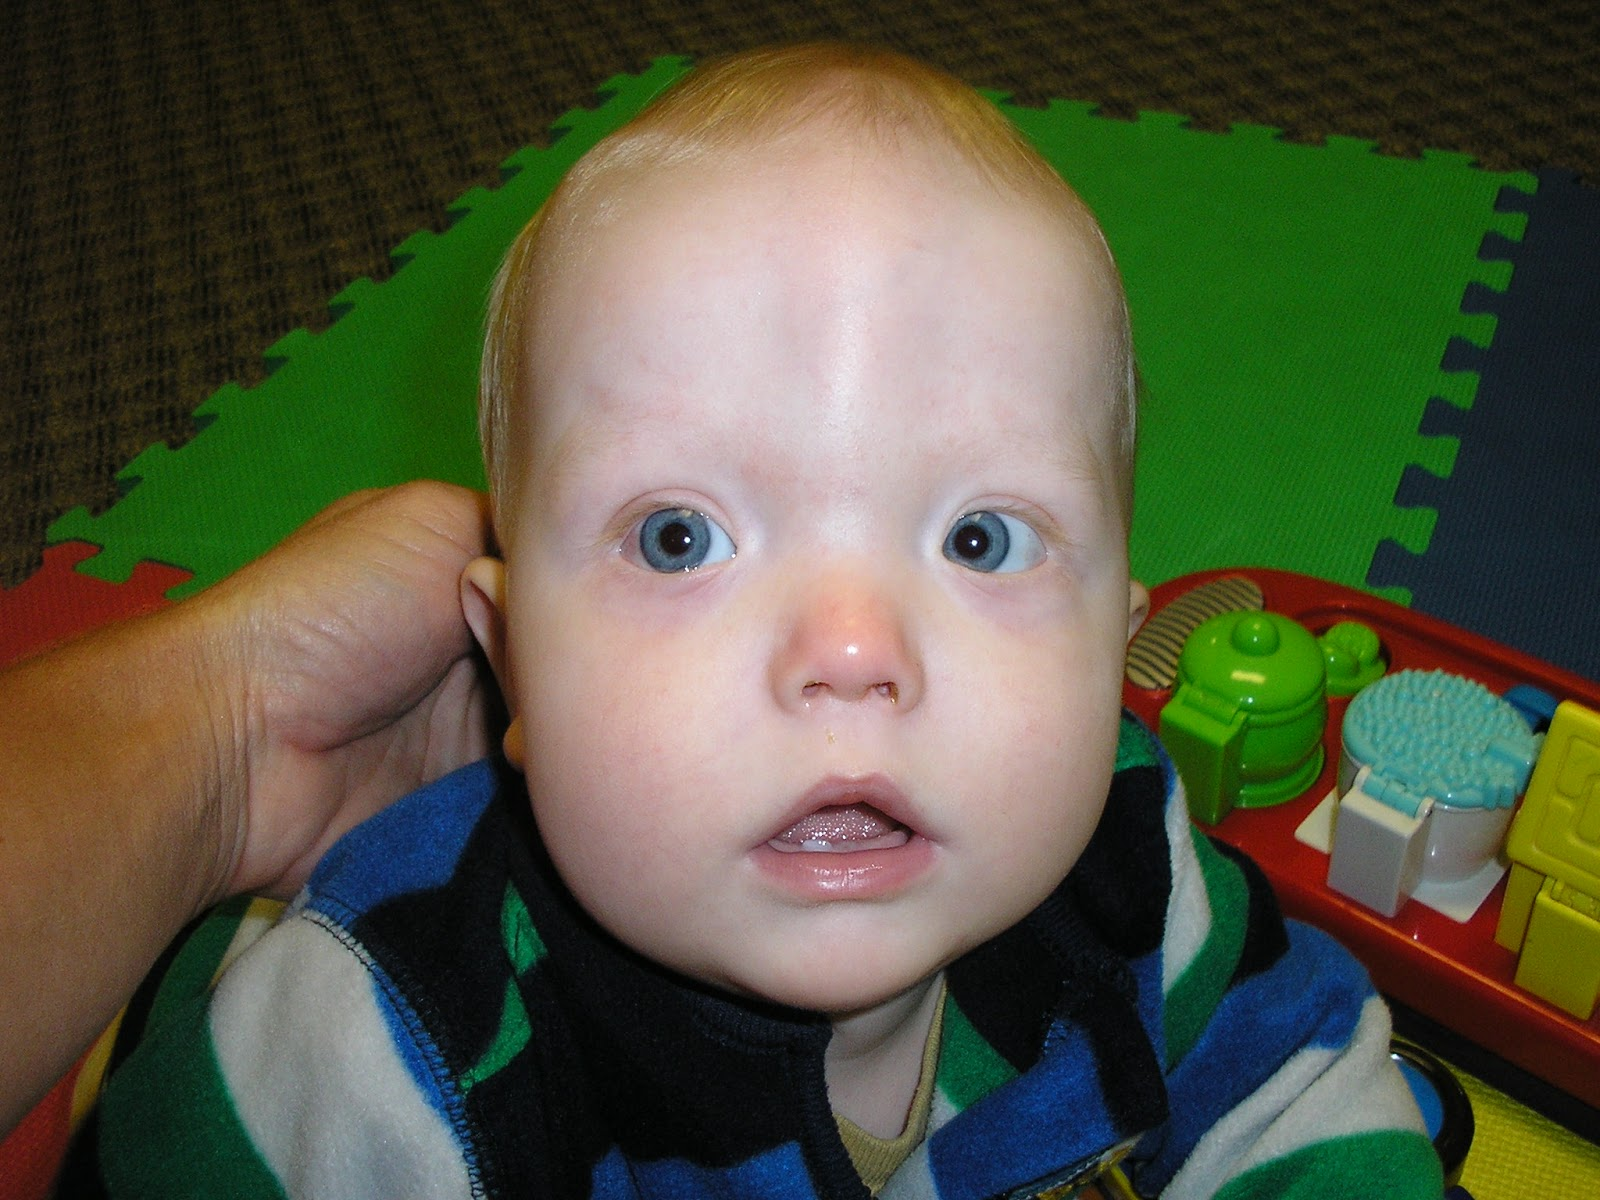 untreated Adults with craniosynostosis